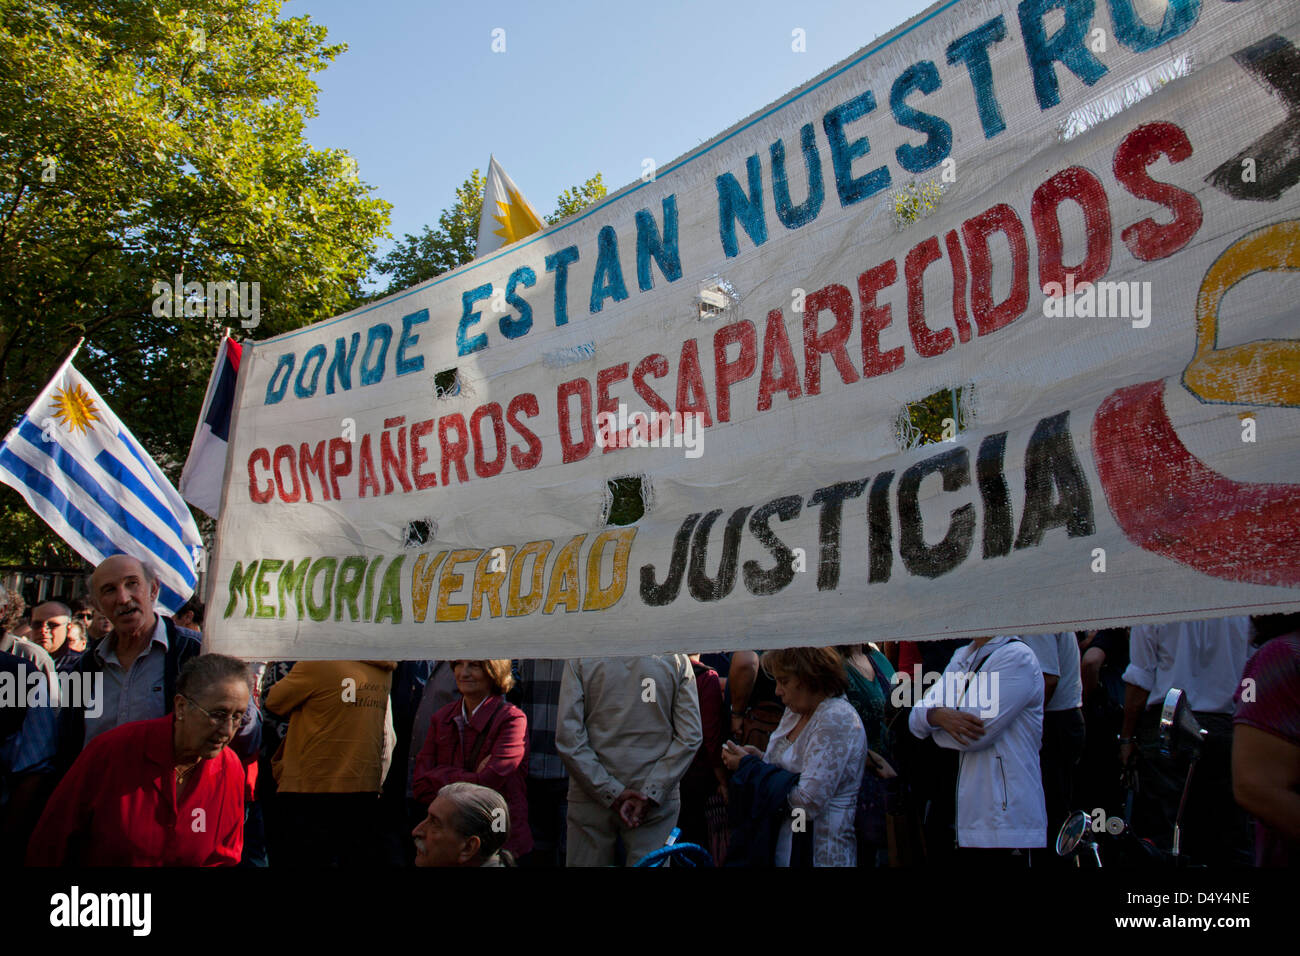 Demonstration by families of people who disappeared during military rule 1973-1984, Montevideo, Uruguay - Stock Image